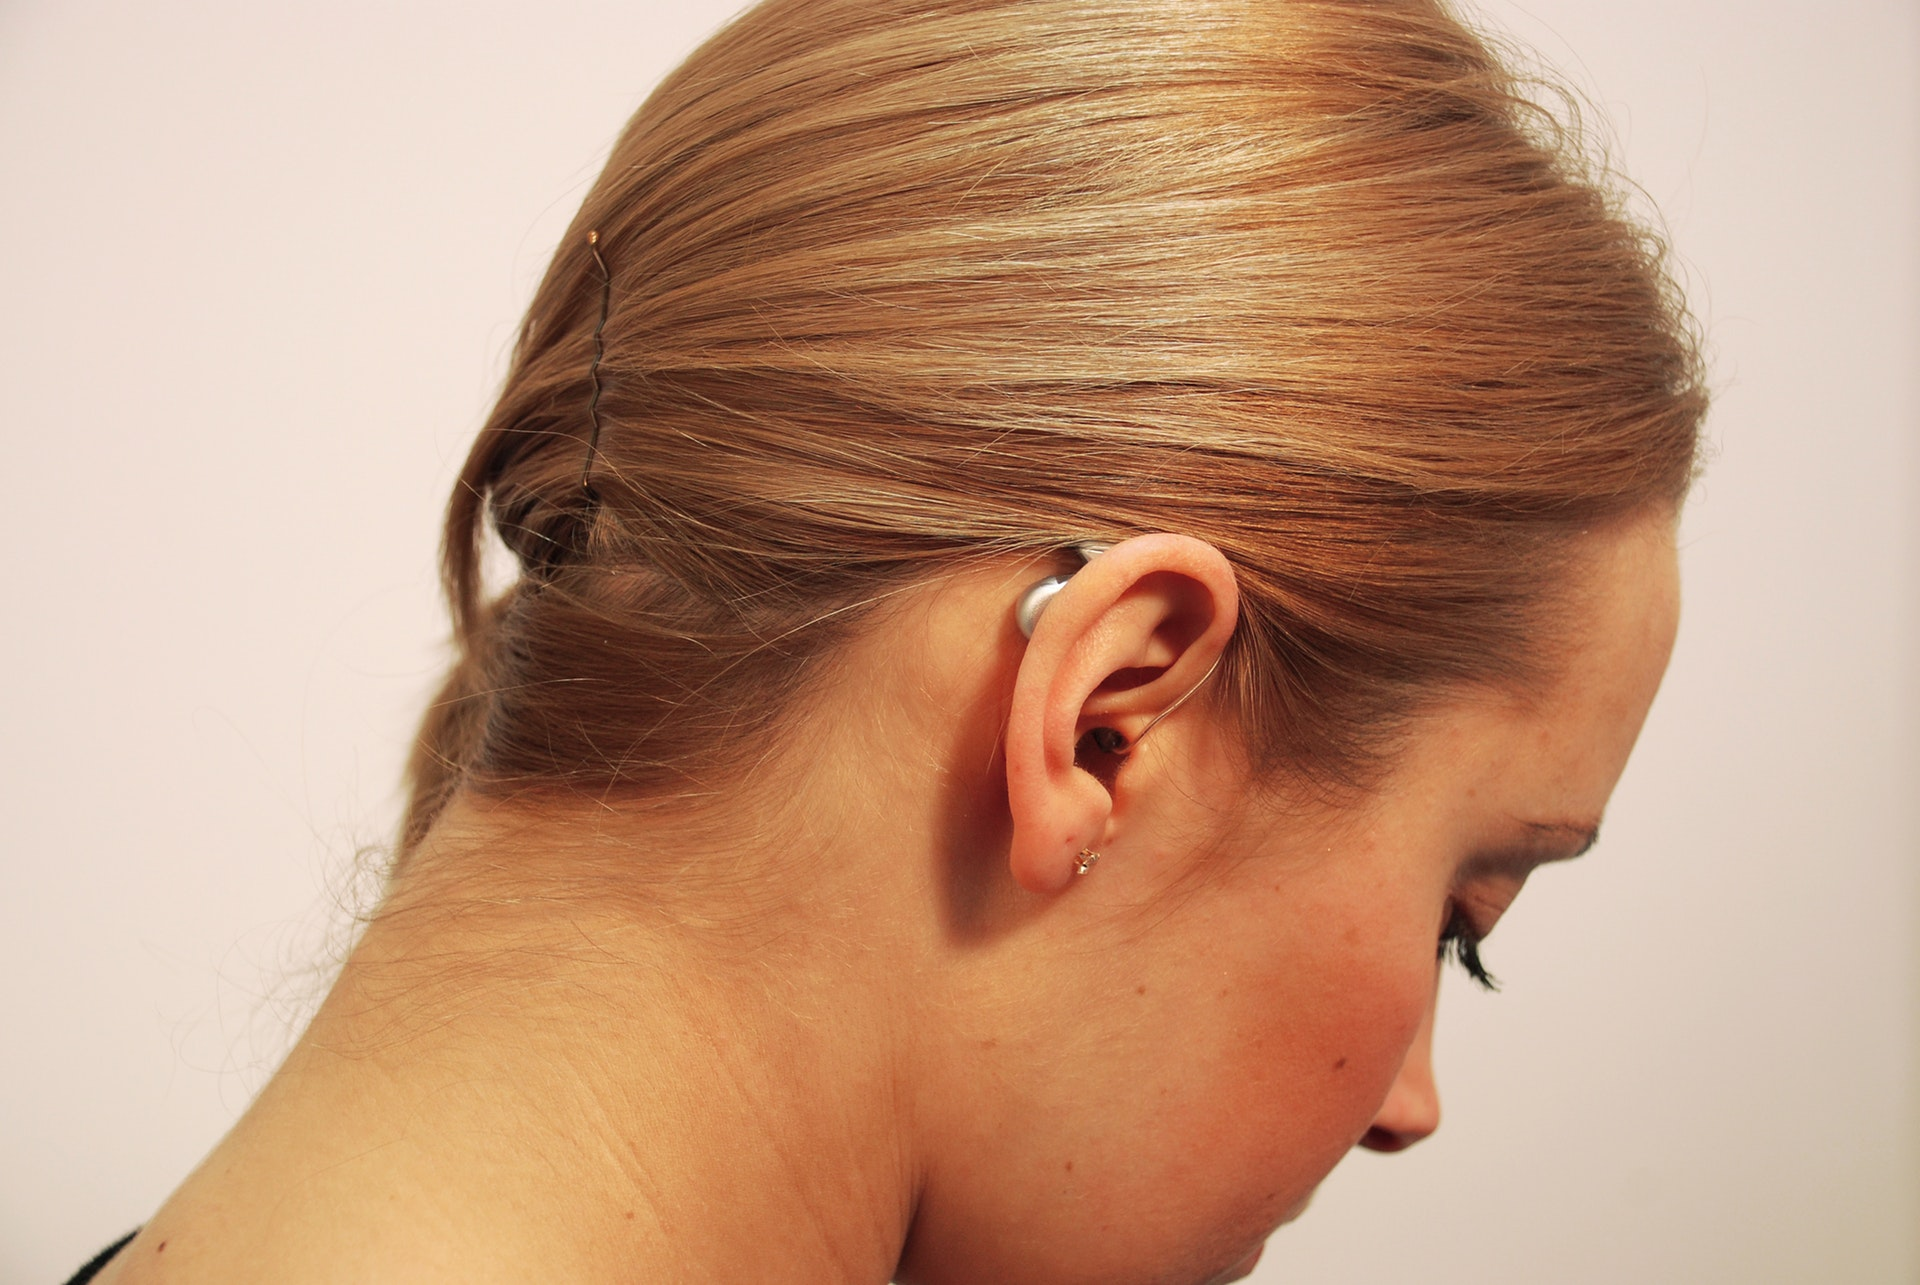 Coping with Hearing Loss: How to Manage It